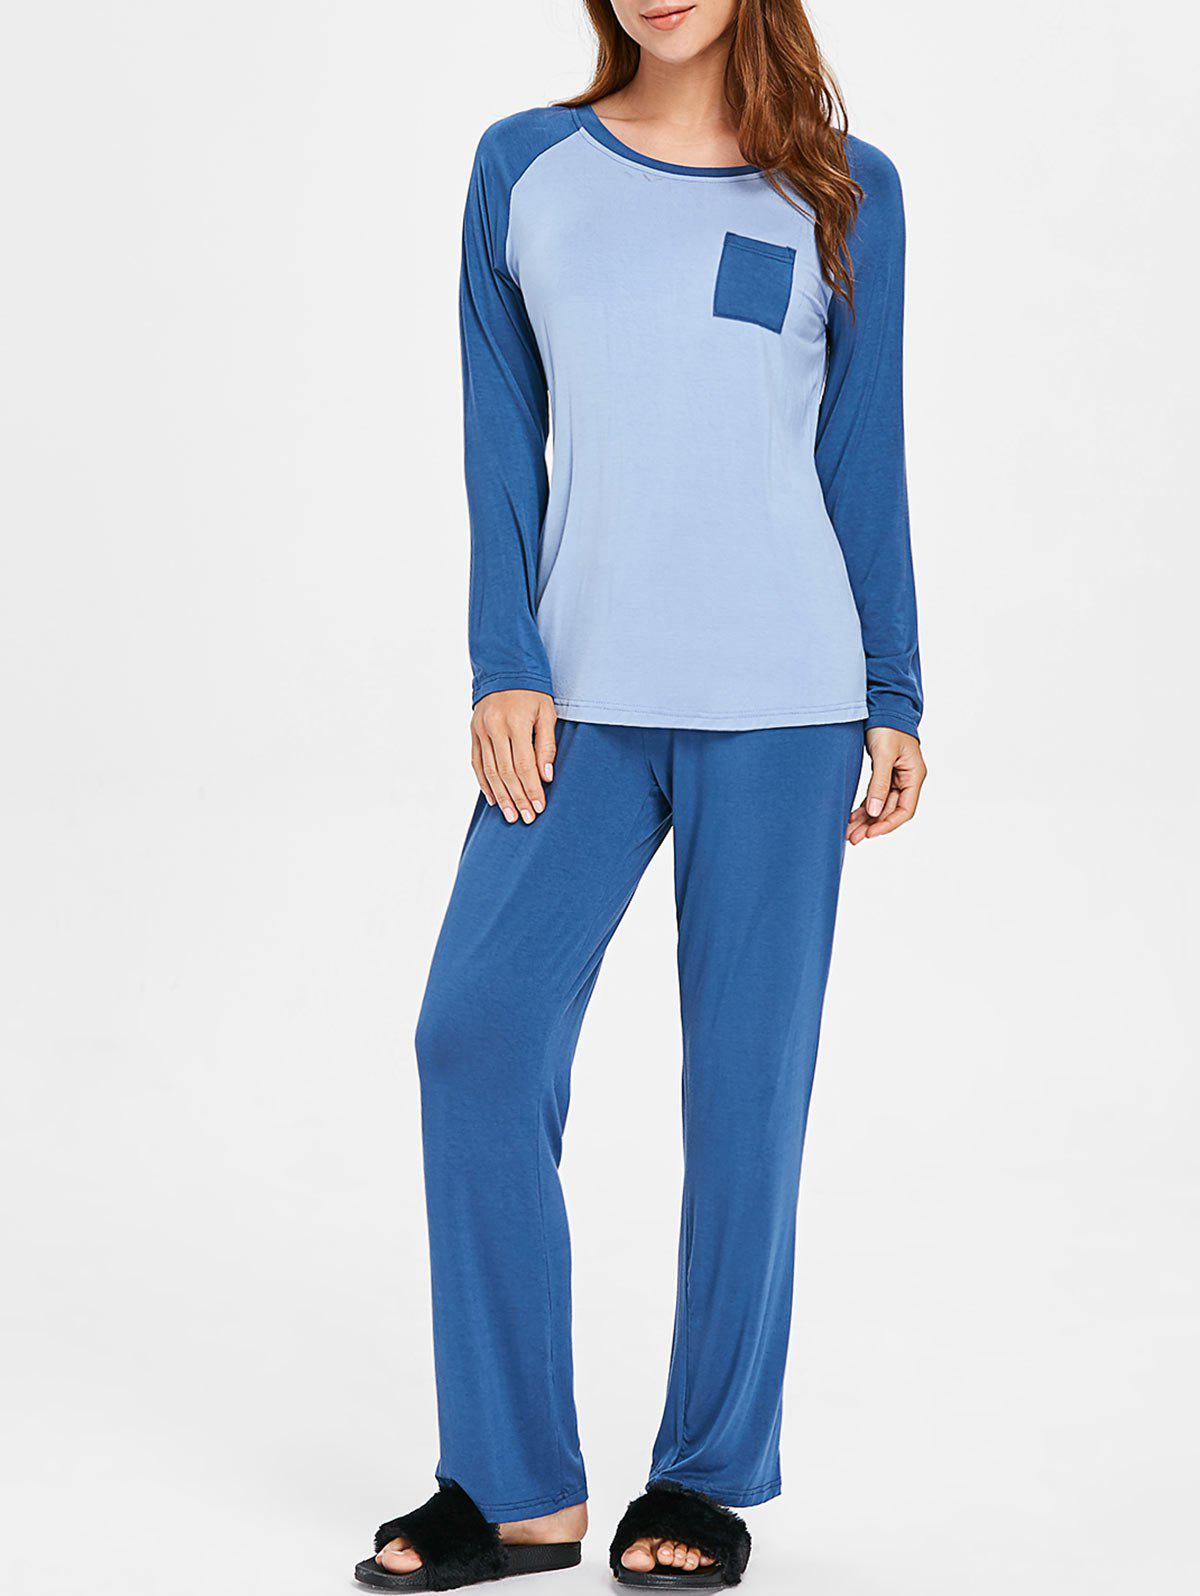 Sale Two Tone Long Sleeves Sleepwear Set with Pocket